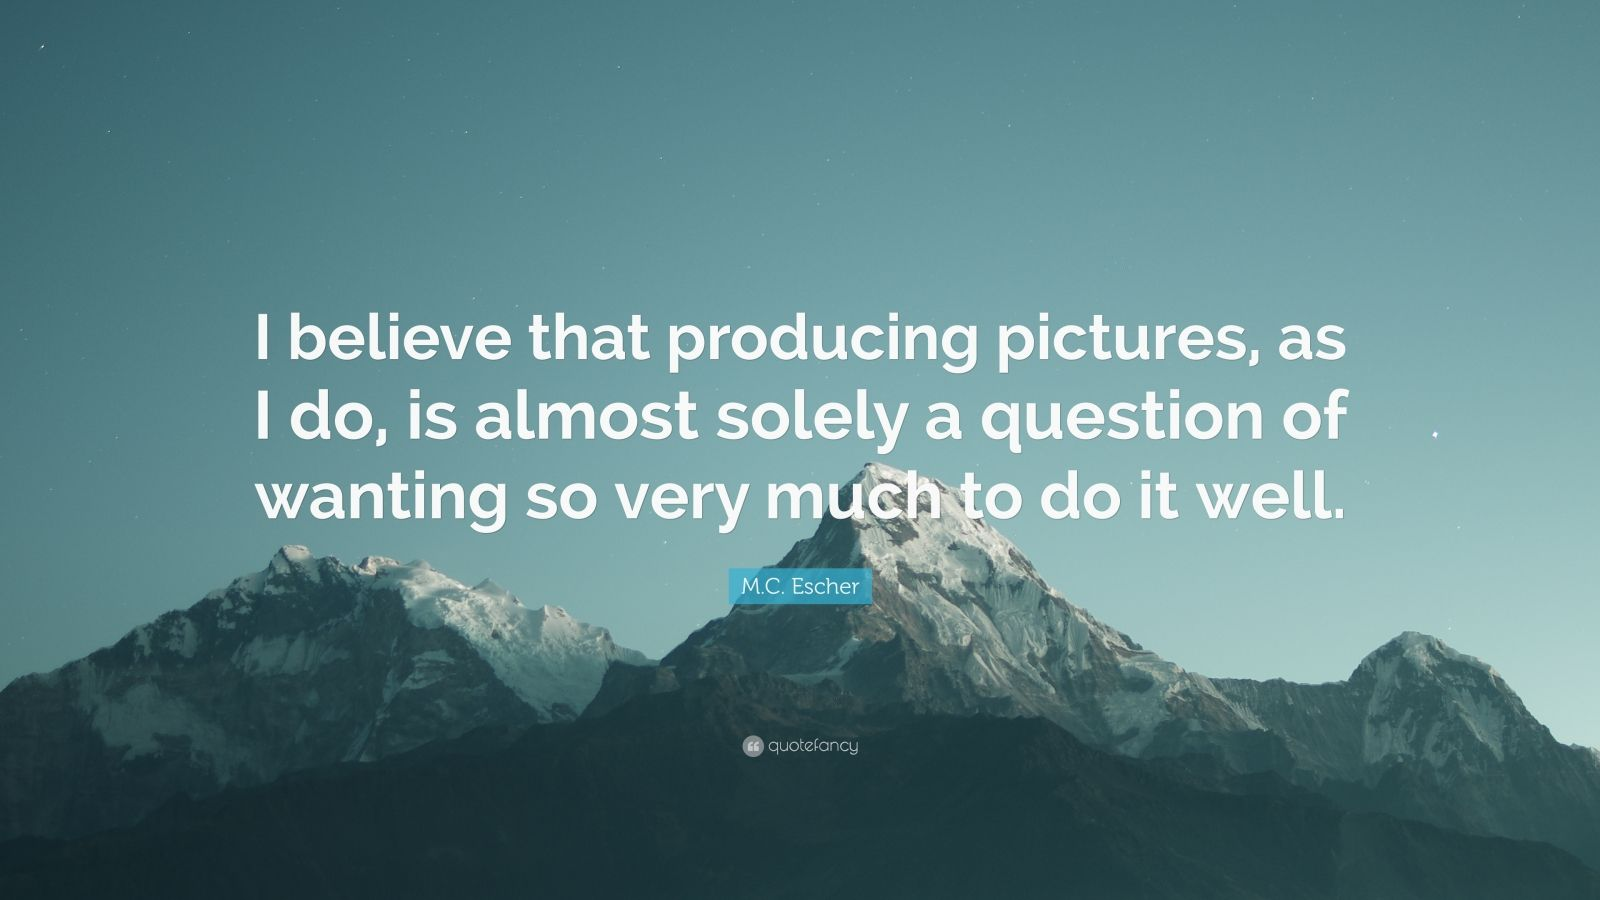 """M.C. Escher Quote: """"I believe that producing pictures, as I do, is almost solely a question of wanting so very much to do it well."""""""